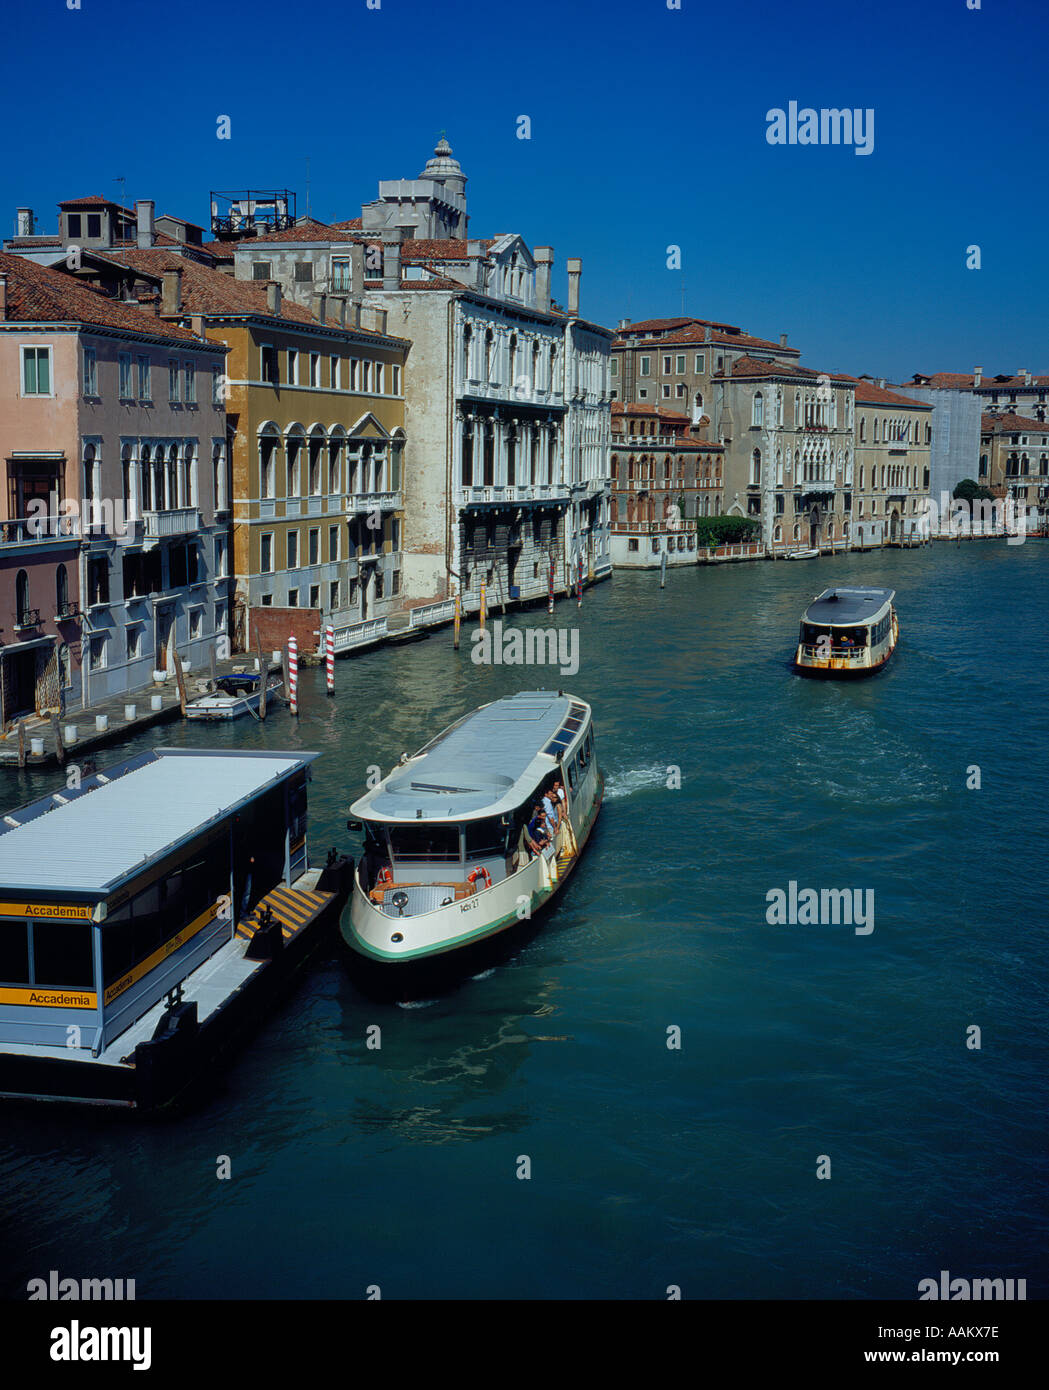 boat stop Accademia Canal Grande Venice, UNESCO World Heritage Site, Italy, Europe. Photo by Willy Matheisl - Stock Image